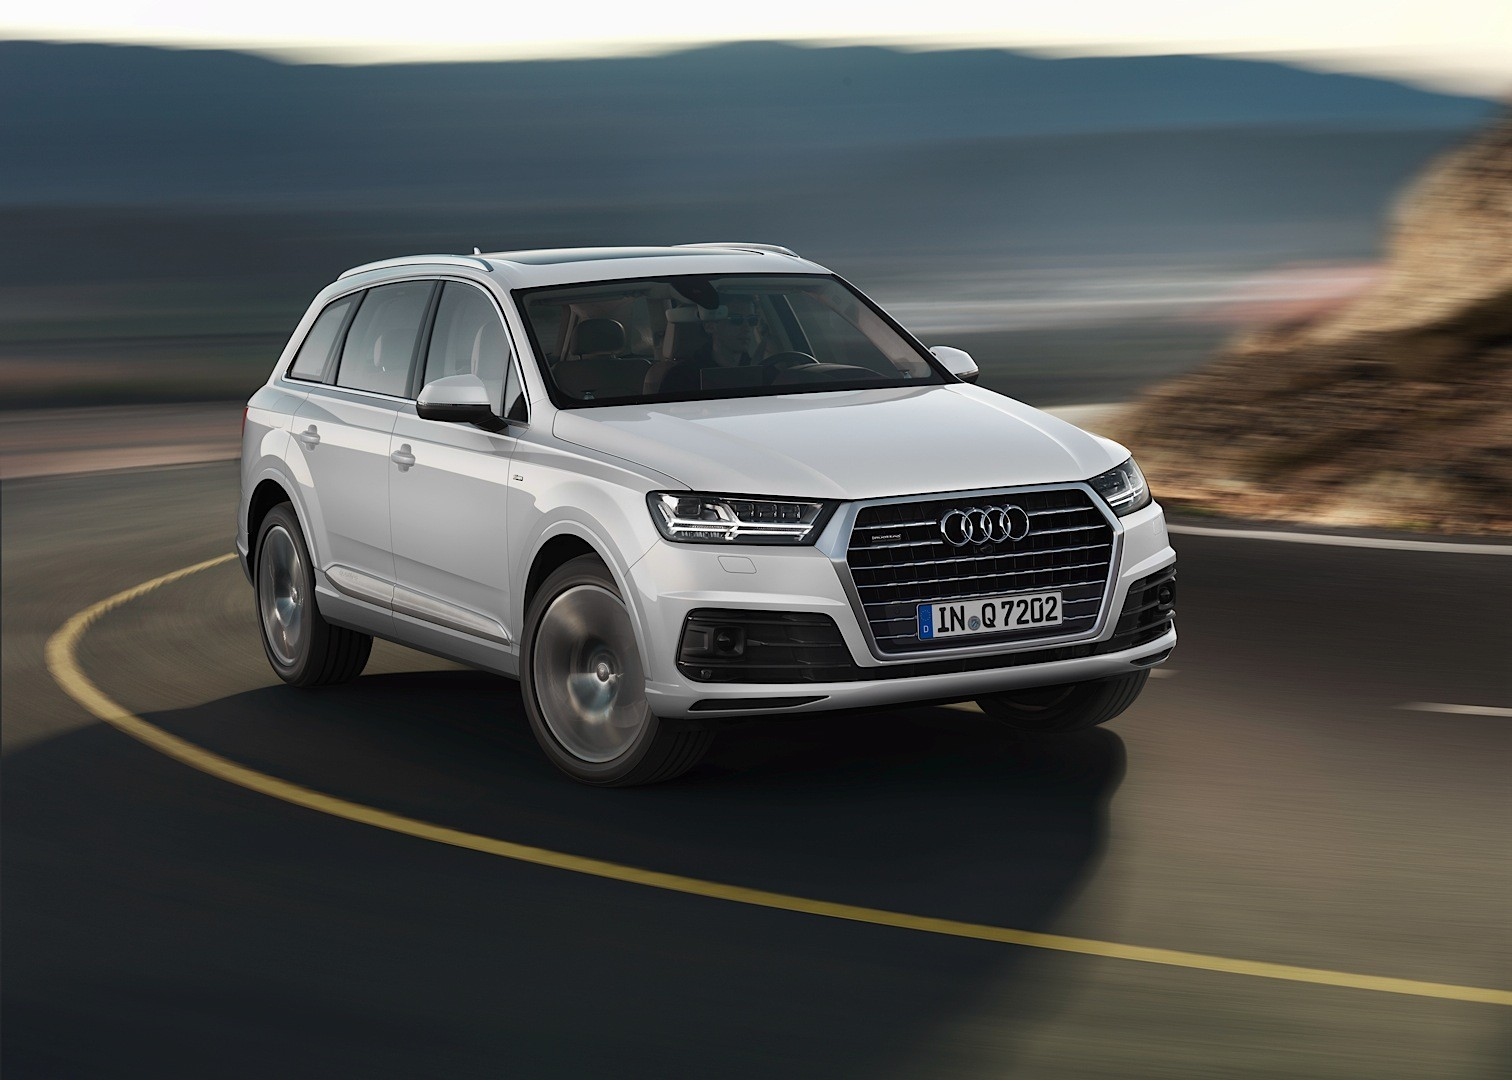 audi shows 2015 q7 in new tofana white color reveals obsession with mountains autoevolution. Black Bedroom Furniture Sets. Home Design Ideas